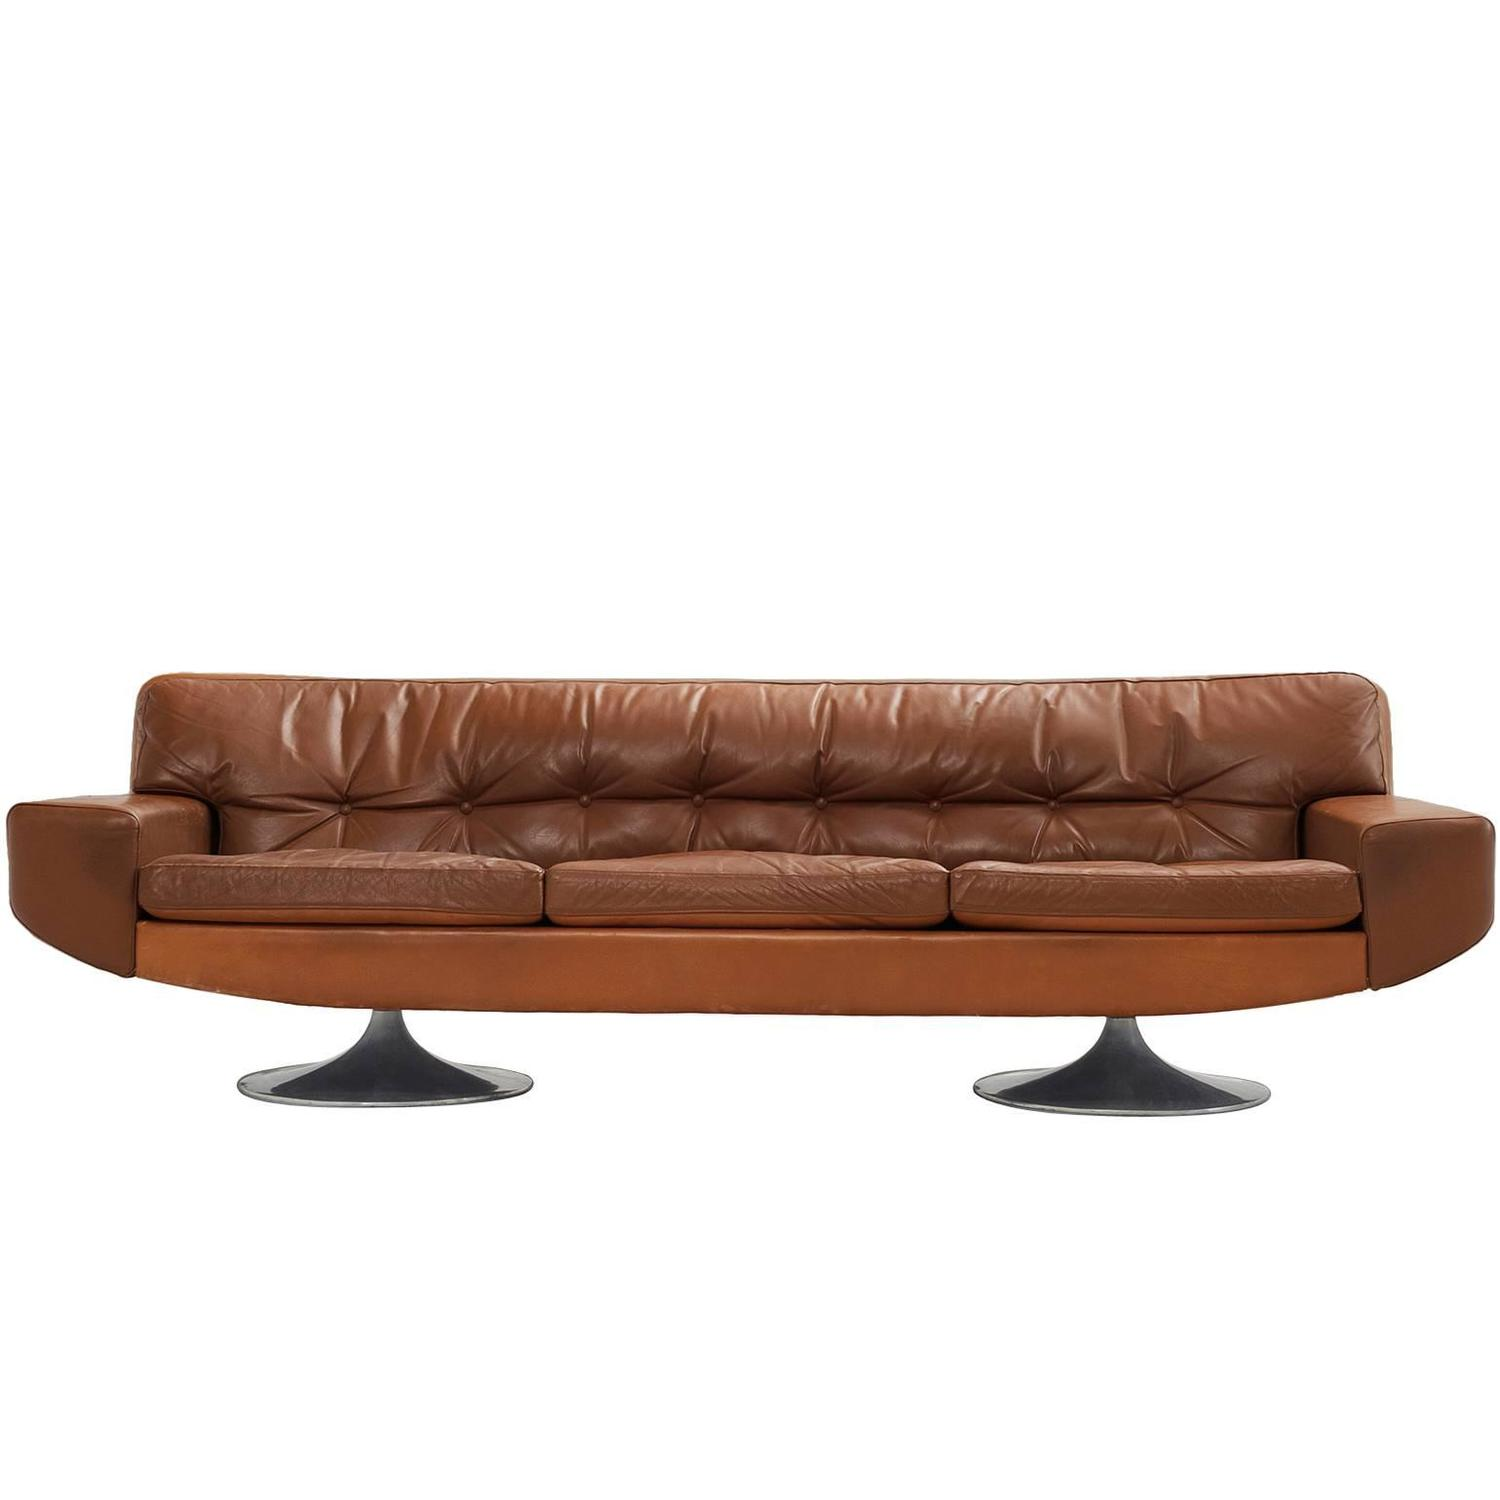 three seather sofa in cognac leather for sale at 1stdibs. Black Bedroom Furniture Sets. Home Design Ideas